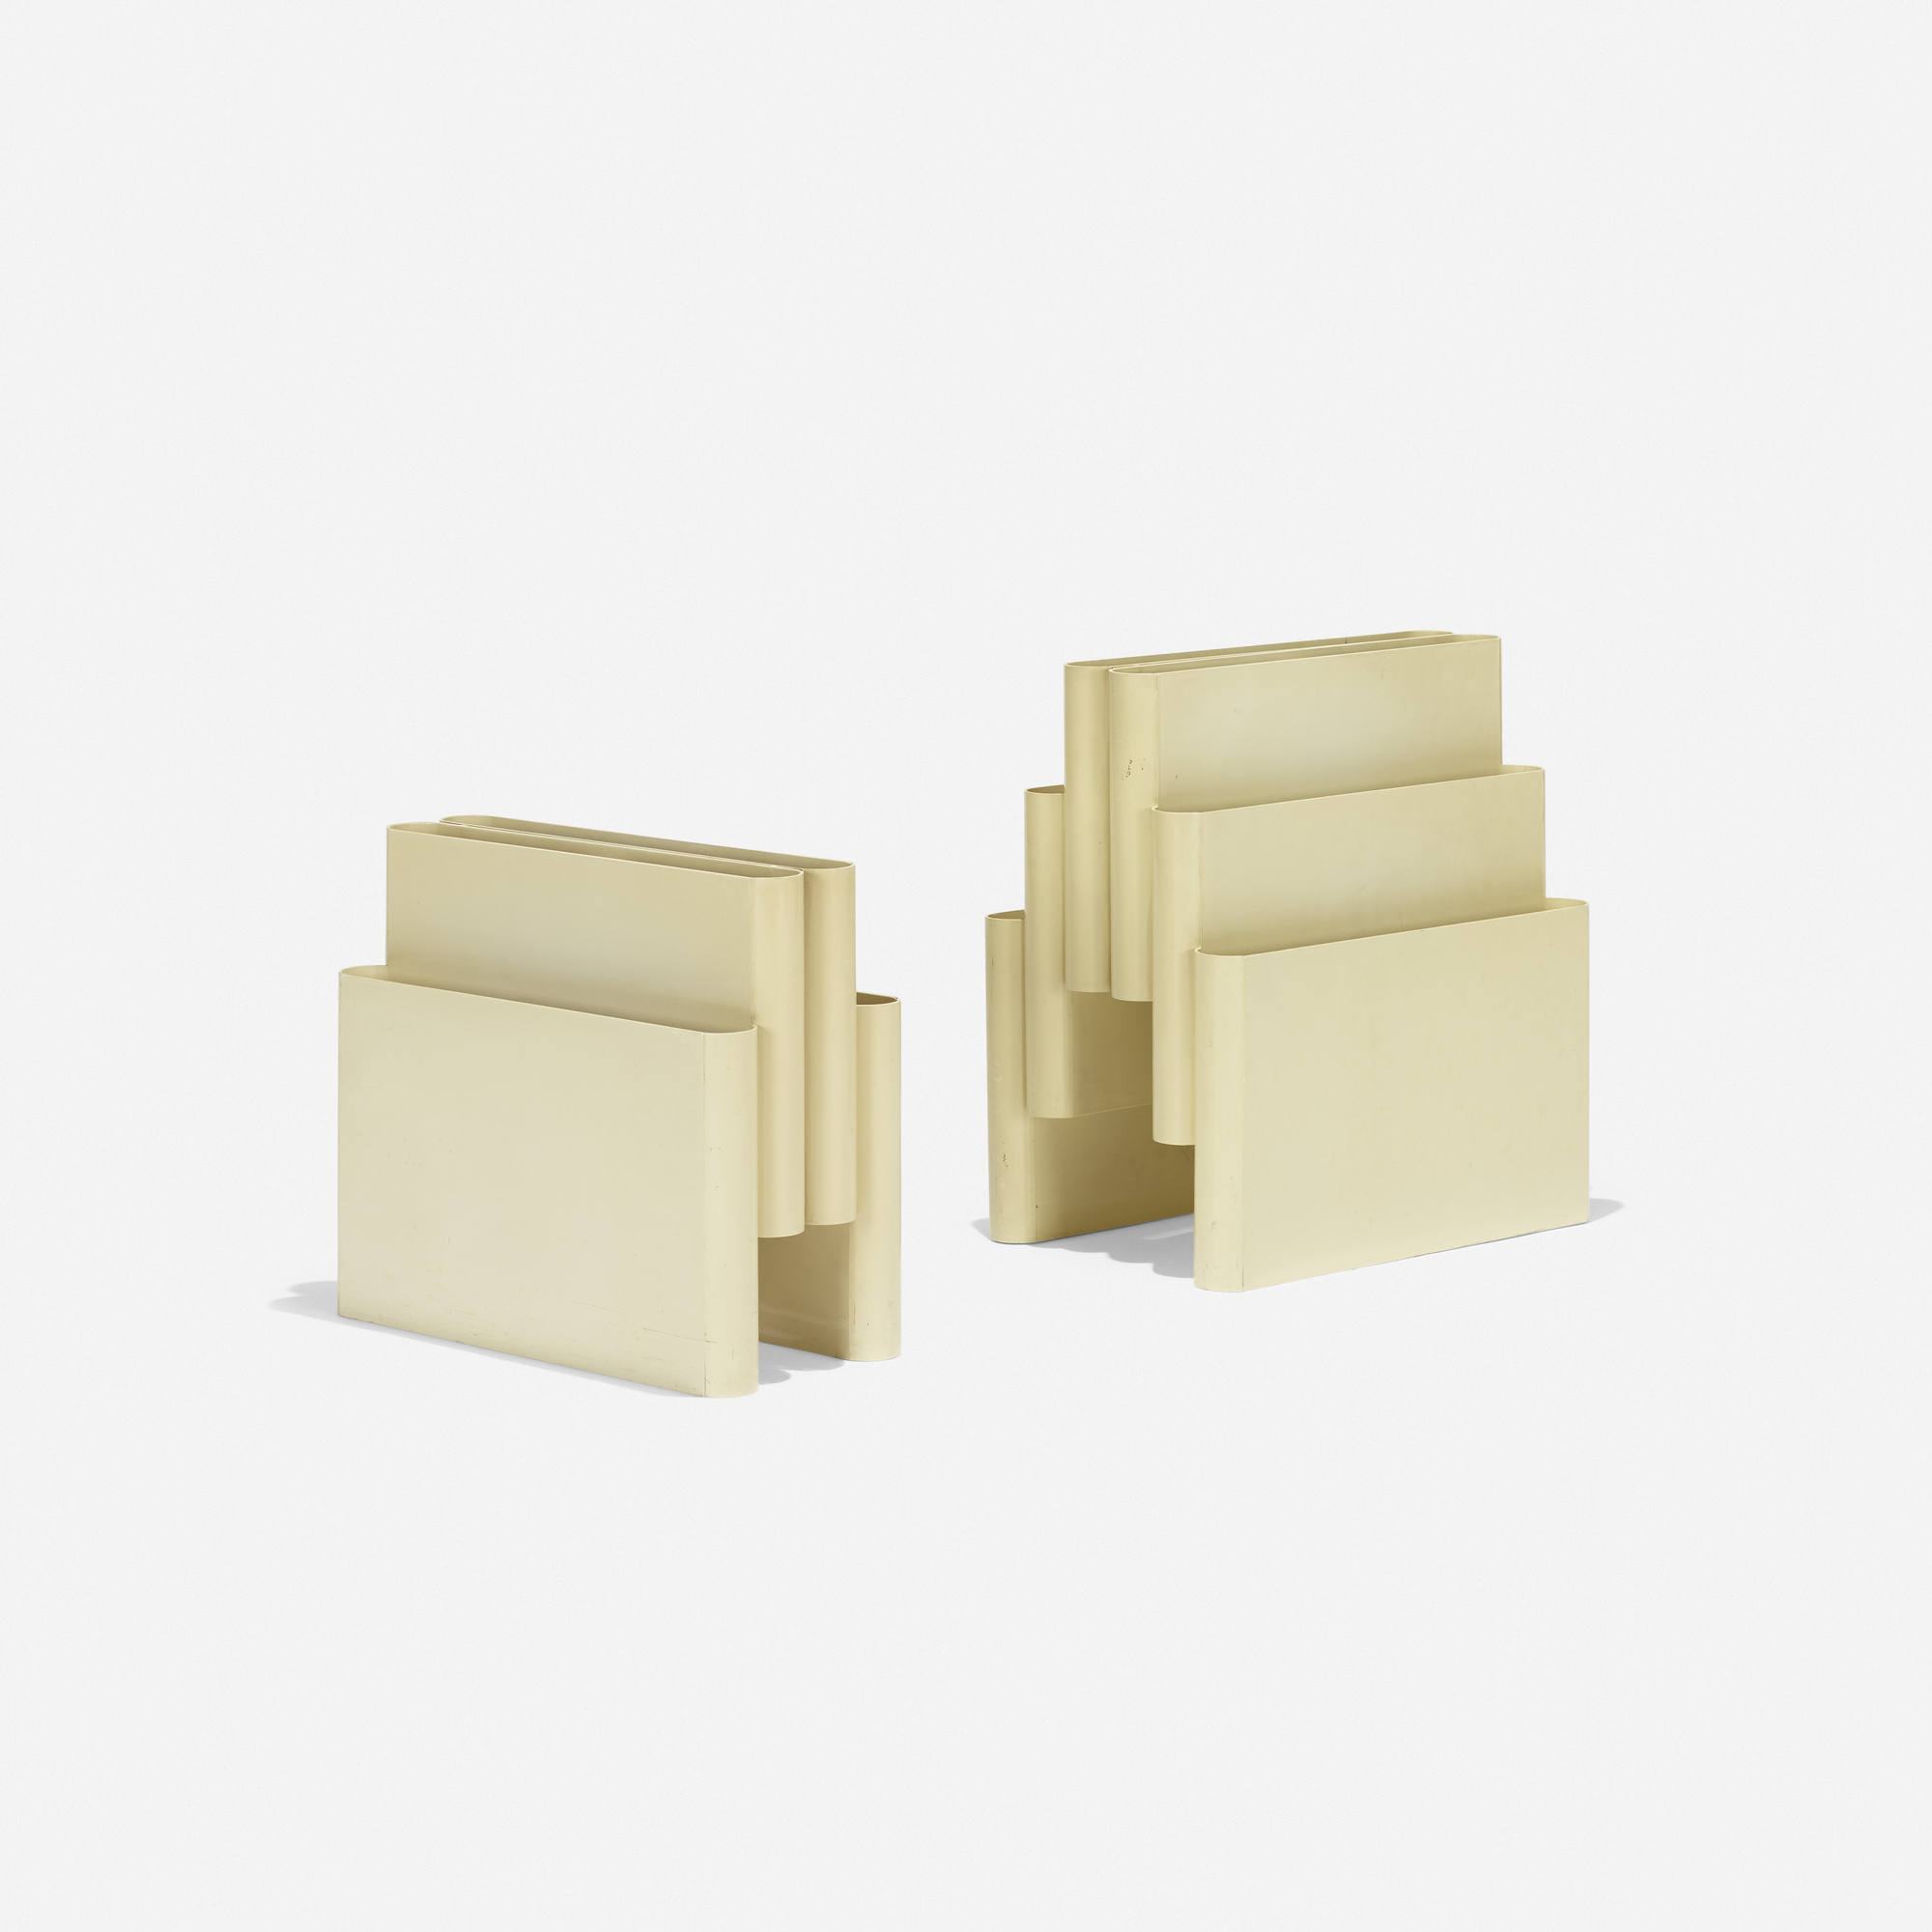 201: Giotto Stoppino / magazine stands, set of two (1 of 2)